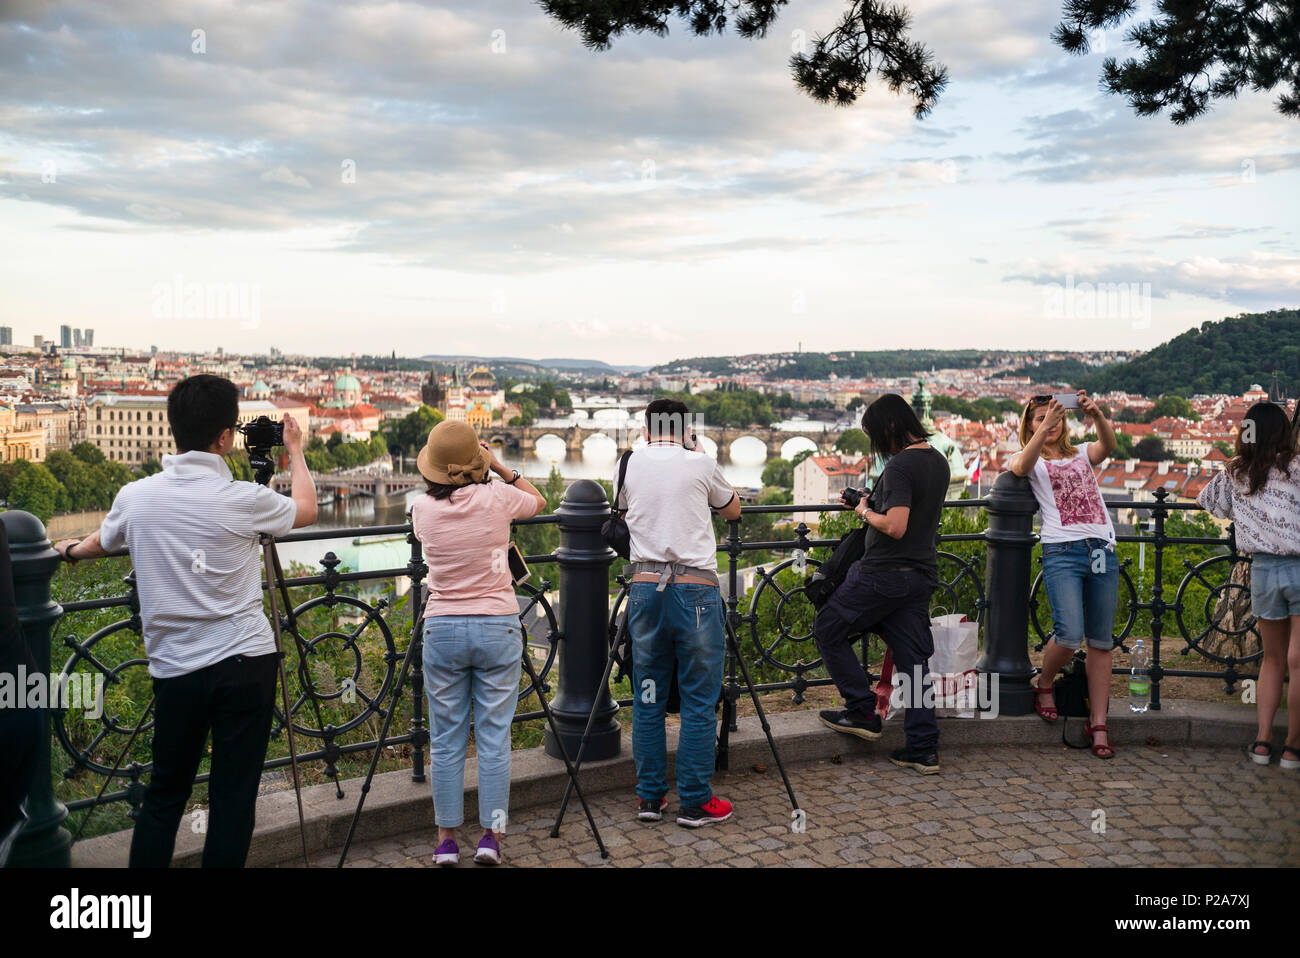 Prague. Czech Republic. Tourists taking photos of the view from Letná Park which provides a viewpoint of the Vltava River and the Old Town (Staré Měst - Stock Image